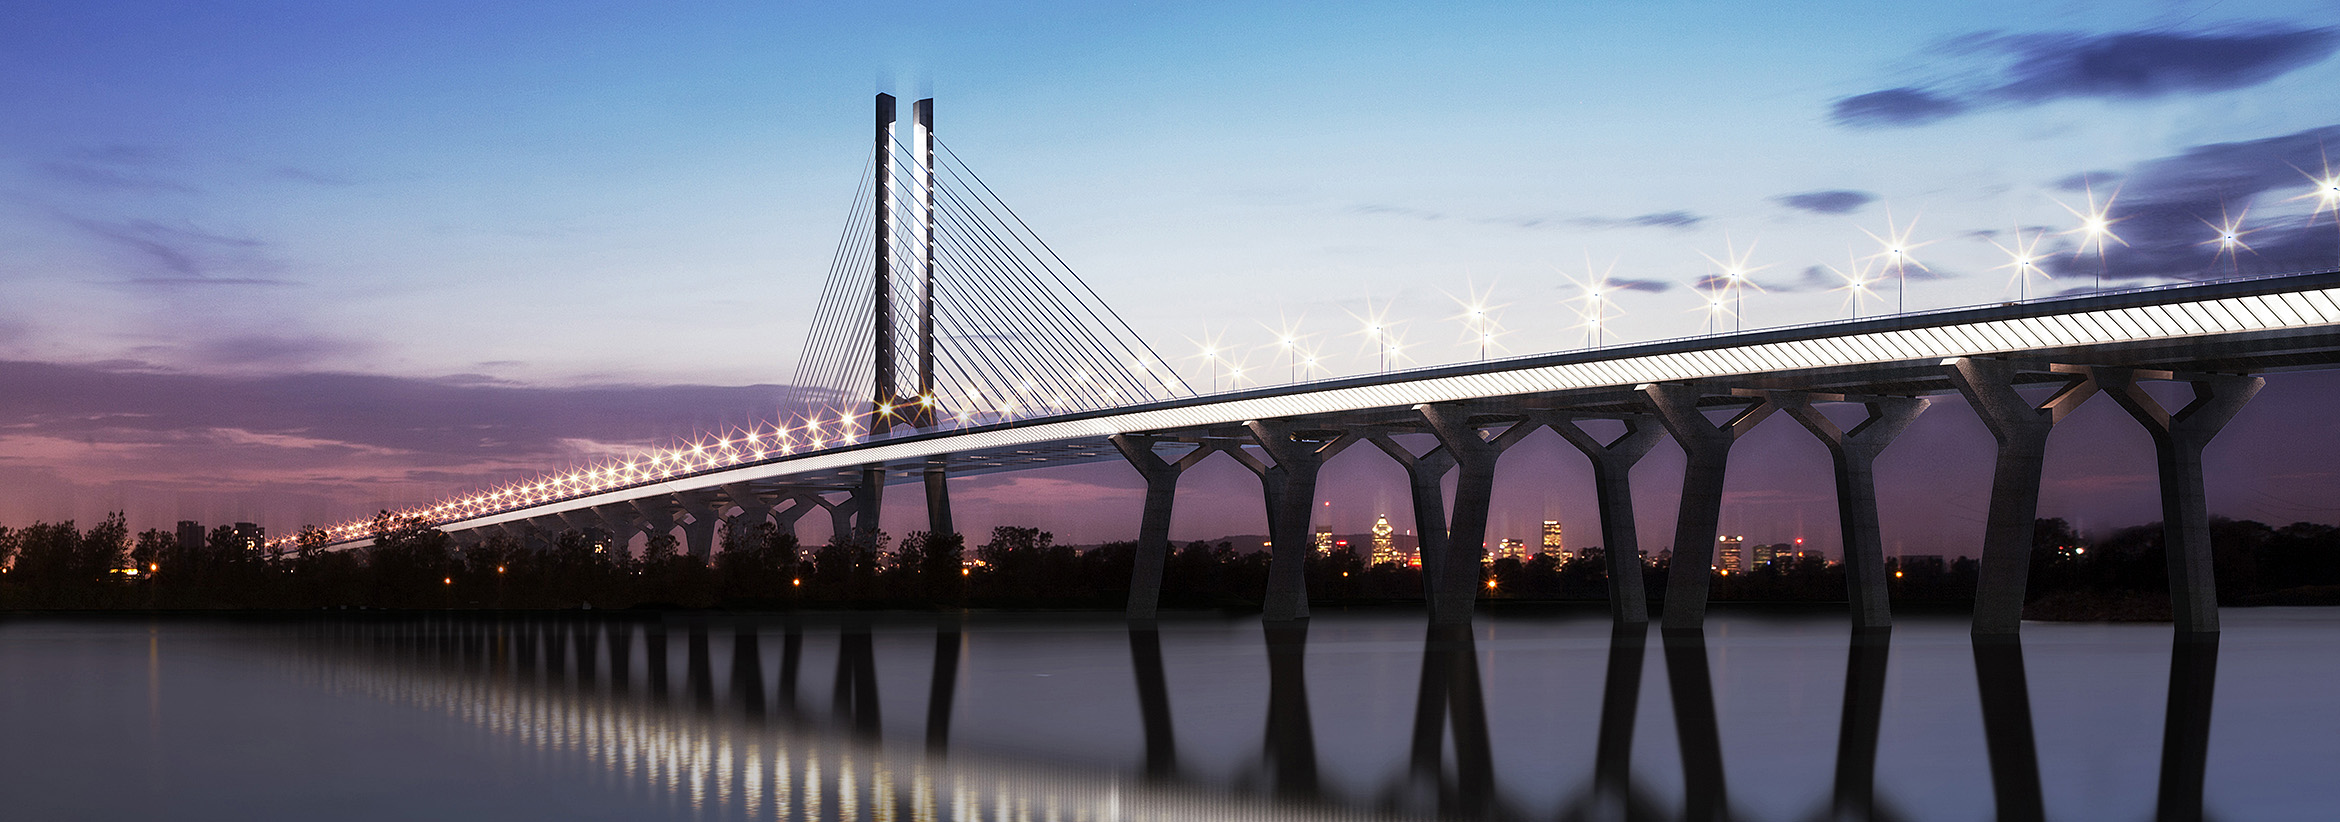 CHAMPLAIN BRIDGE CORRIDOR PROJECT